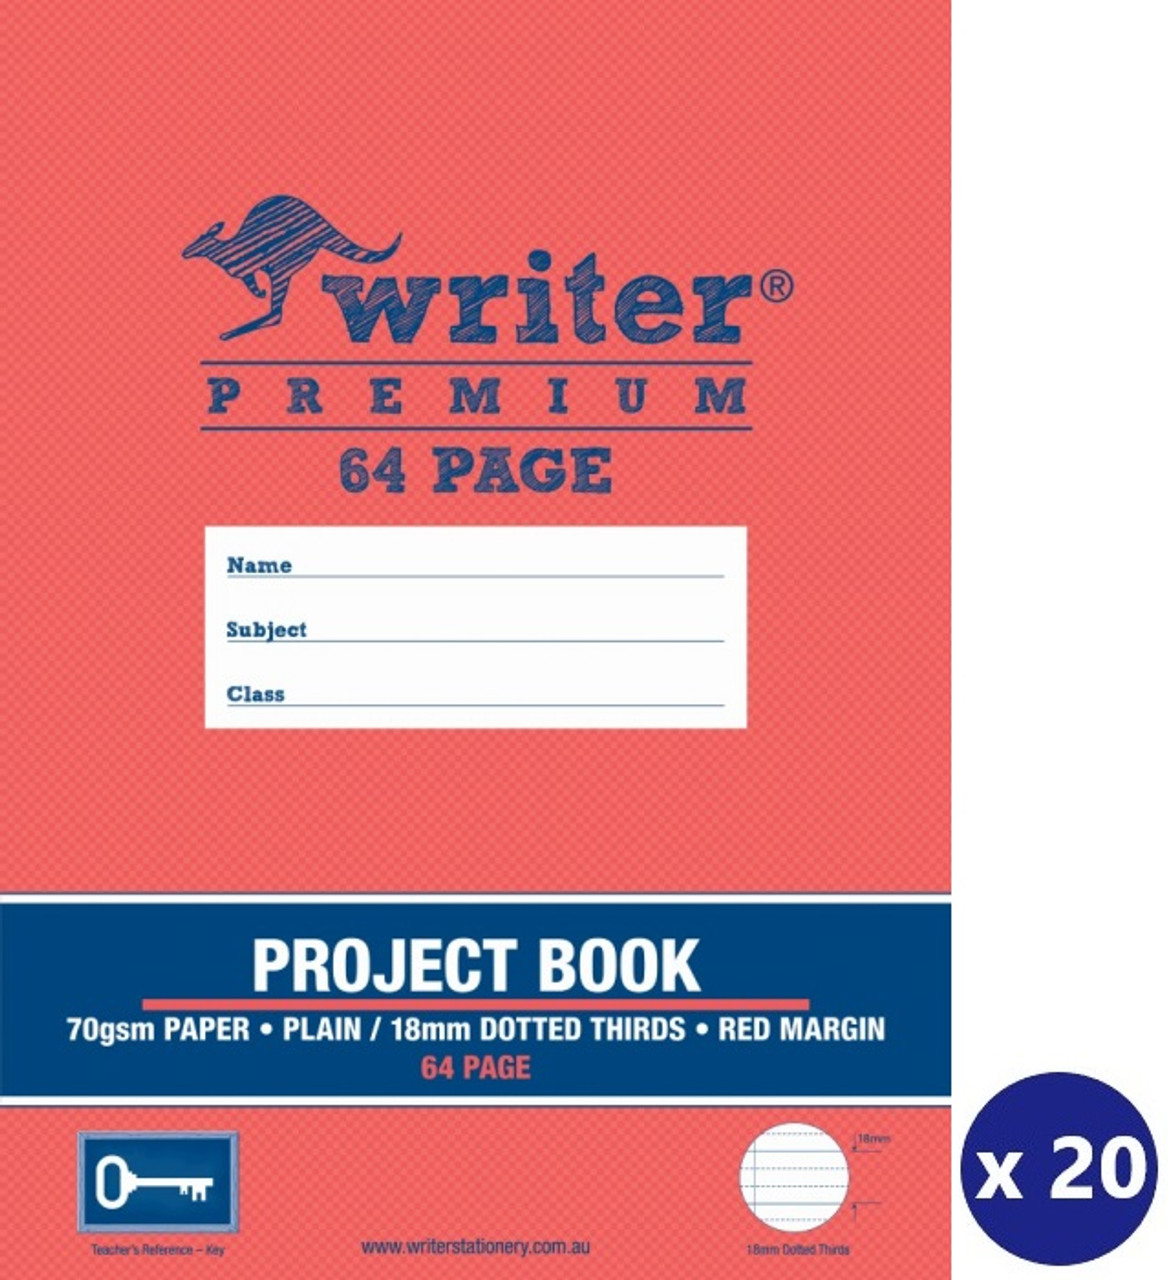 WRITER PREMIUM EB6520 PROJECT BOOK 64 PAGE PLAIN/18MM DOTTED THIRDS WITH  MARGIN (KEY) - PACK 20